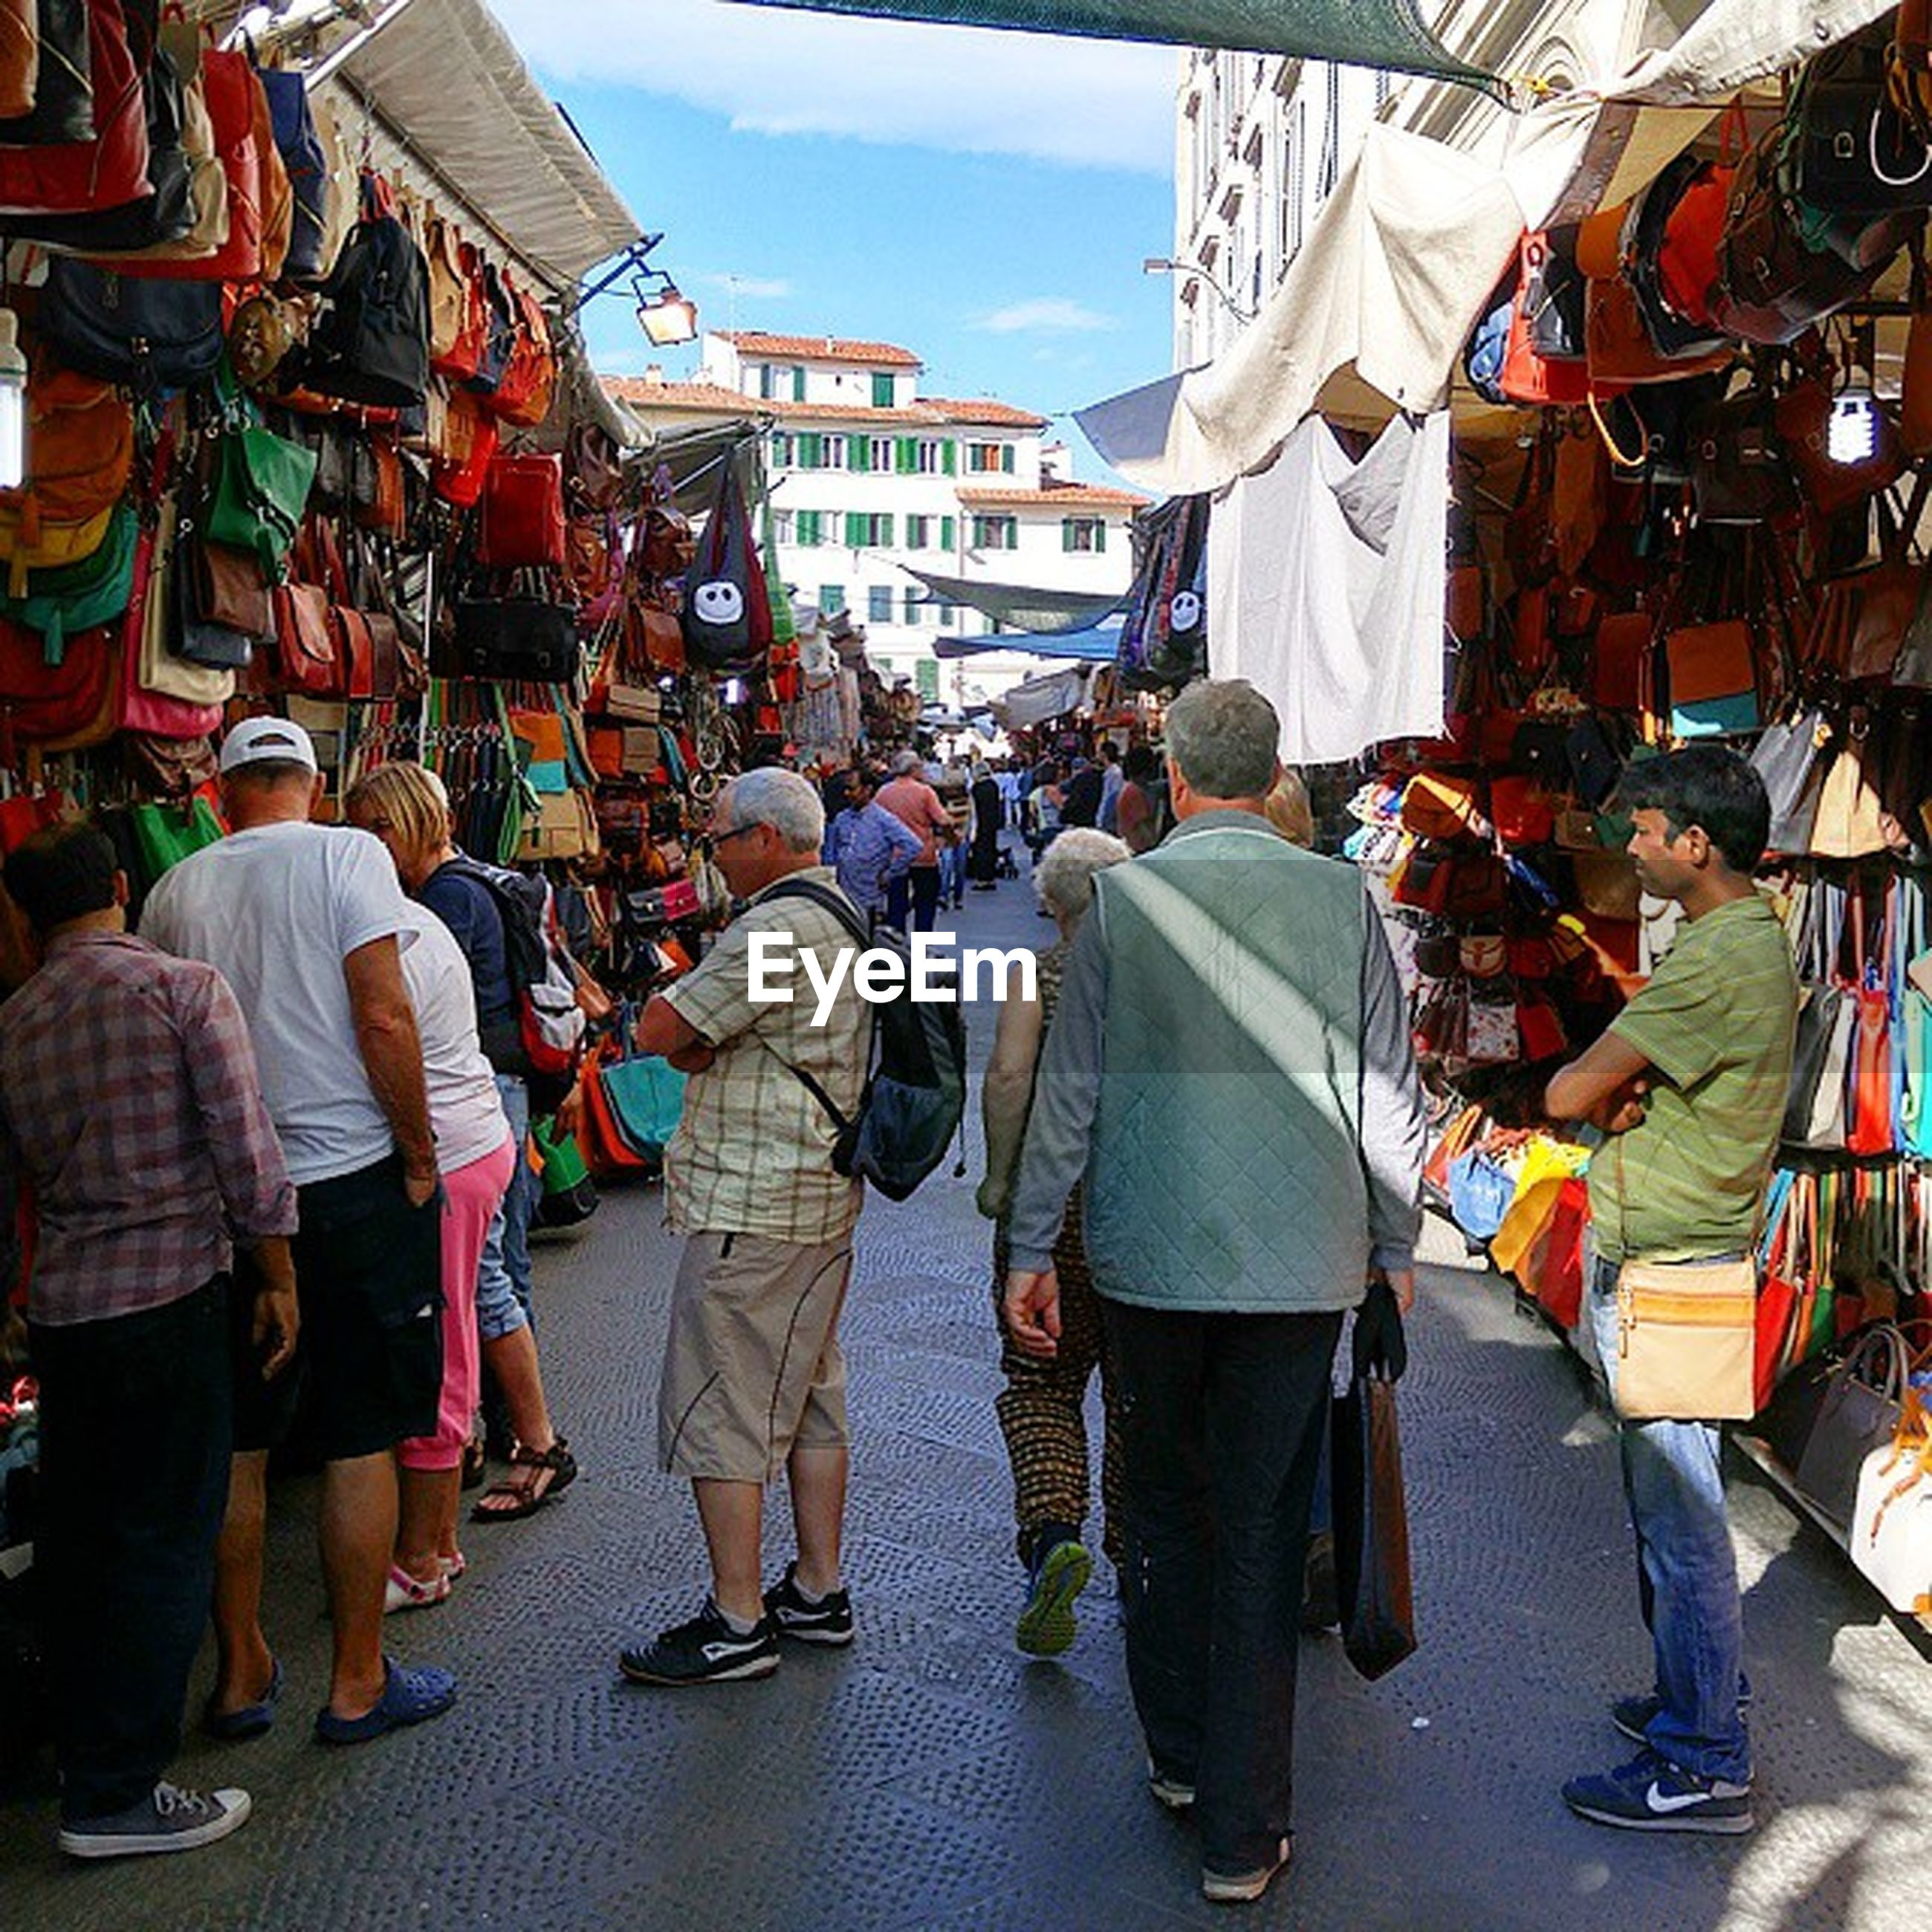 men, large group of people, market, person, street, building exterior, walking, market stall, built structure, architecture, lifestyles, city, retail, city life, shopping, street market, crowd, store, rear view